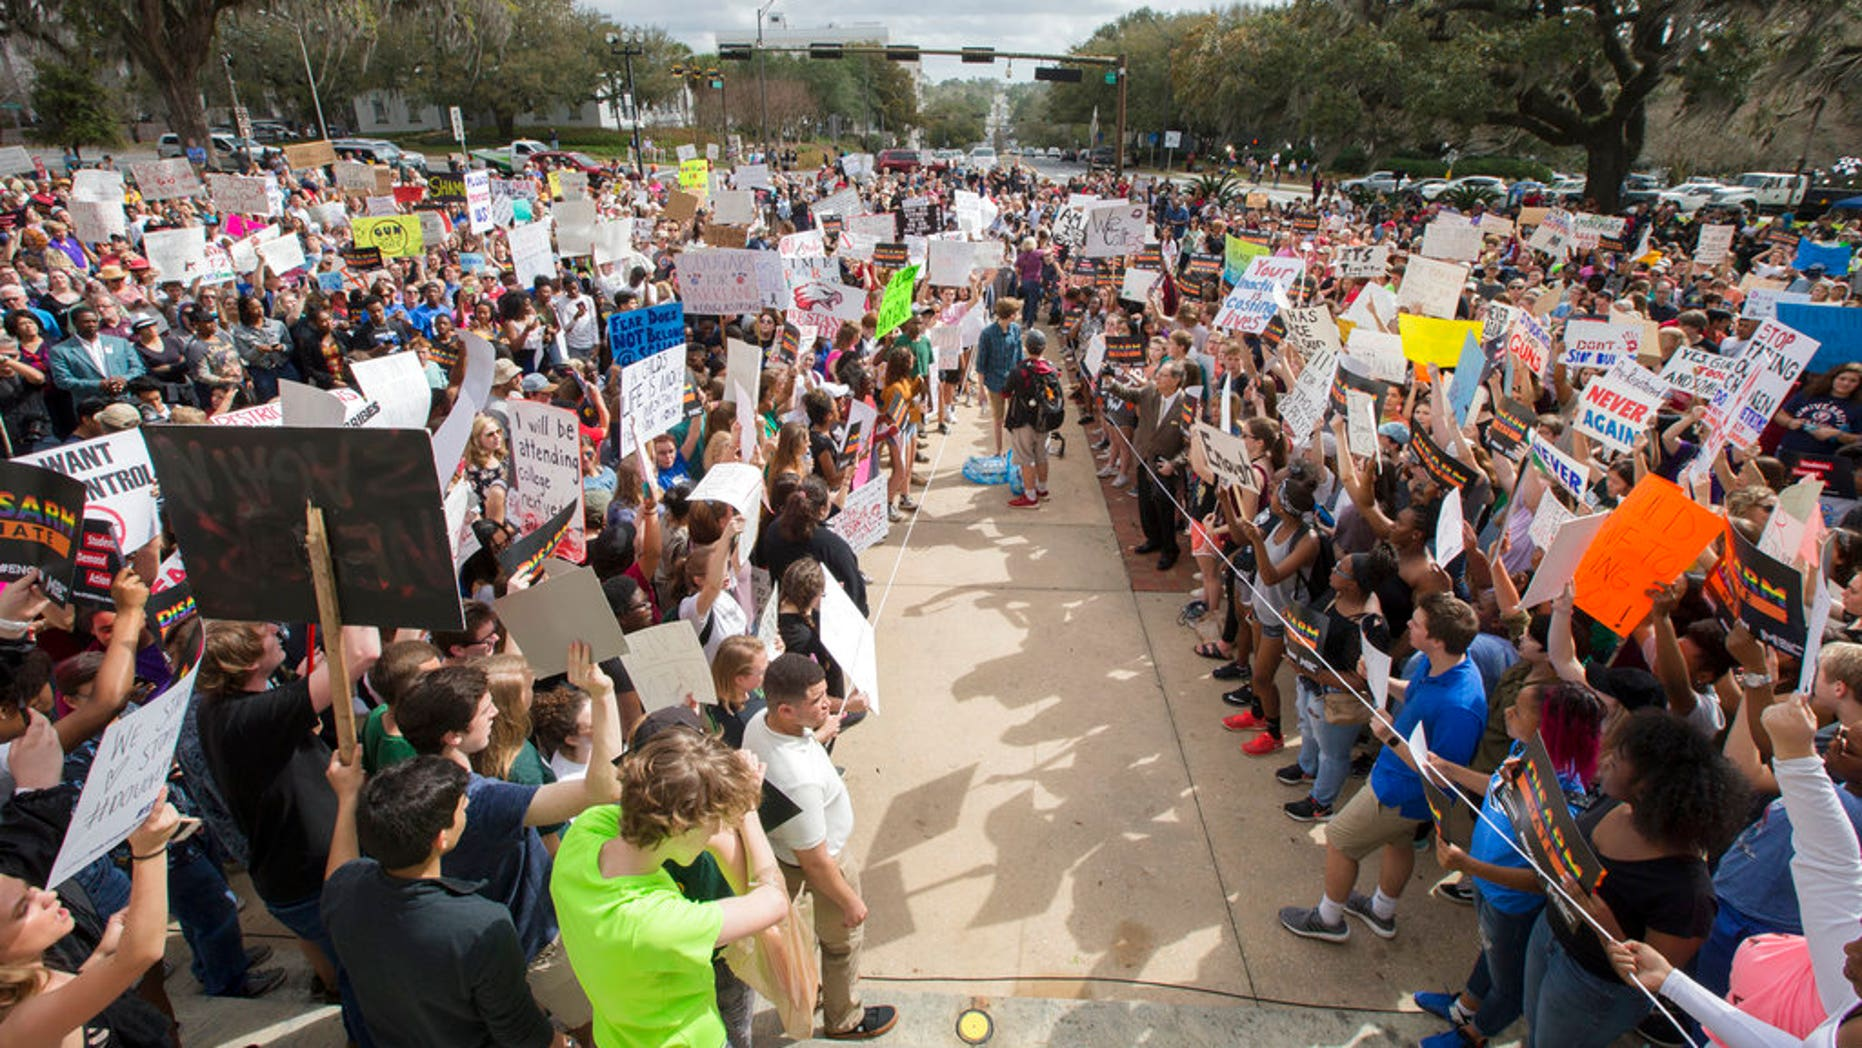 Students gather on the steps of the old Florida Capitol protesting gun violence in Tallahassee, Florida, on Wednesday. A school district in Texas has threatened to suspect students who participate in similar protest events.